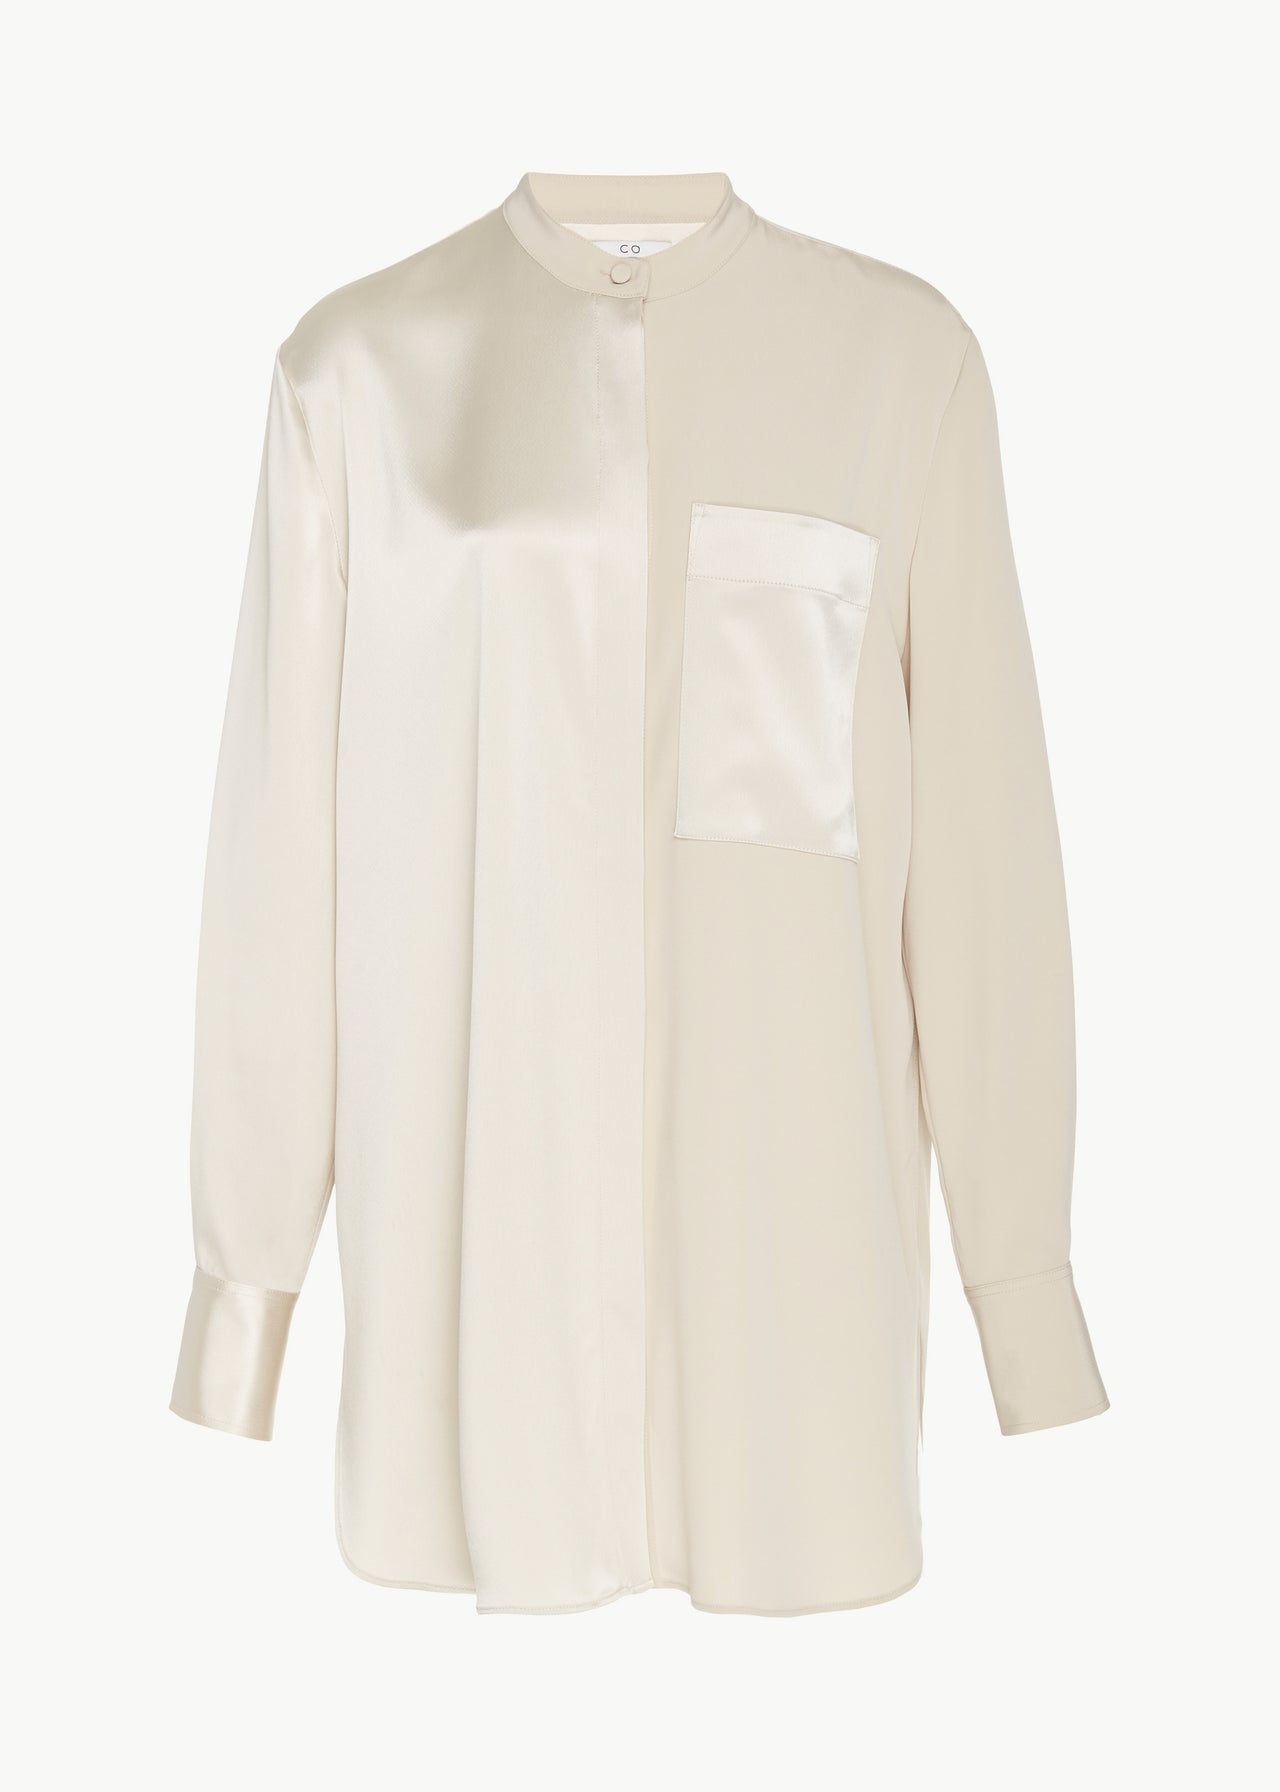 Banded Neck Shirt in Stretch Crepe - Champagne